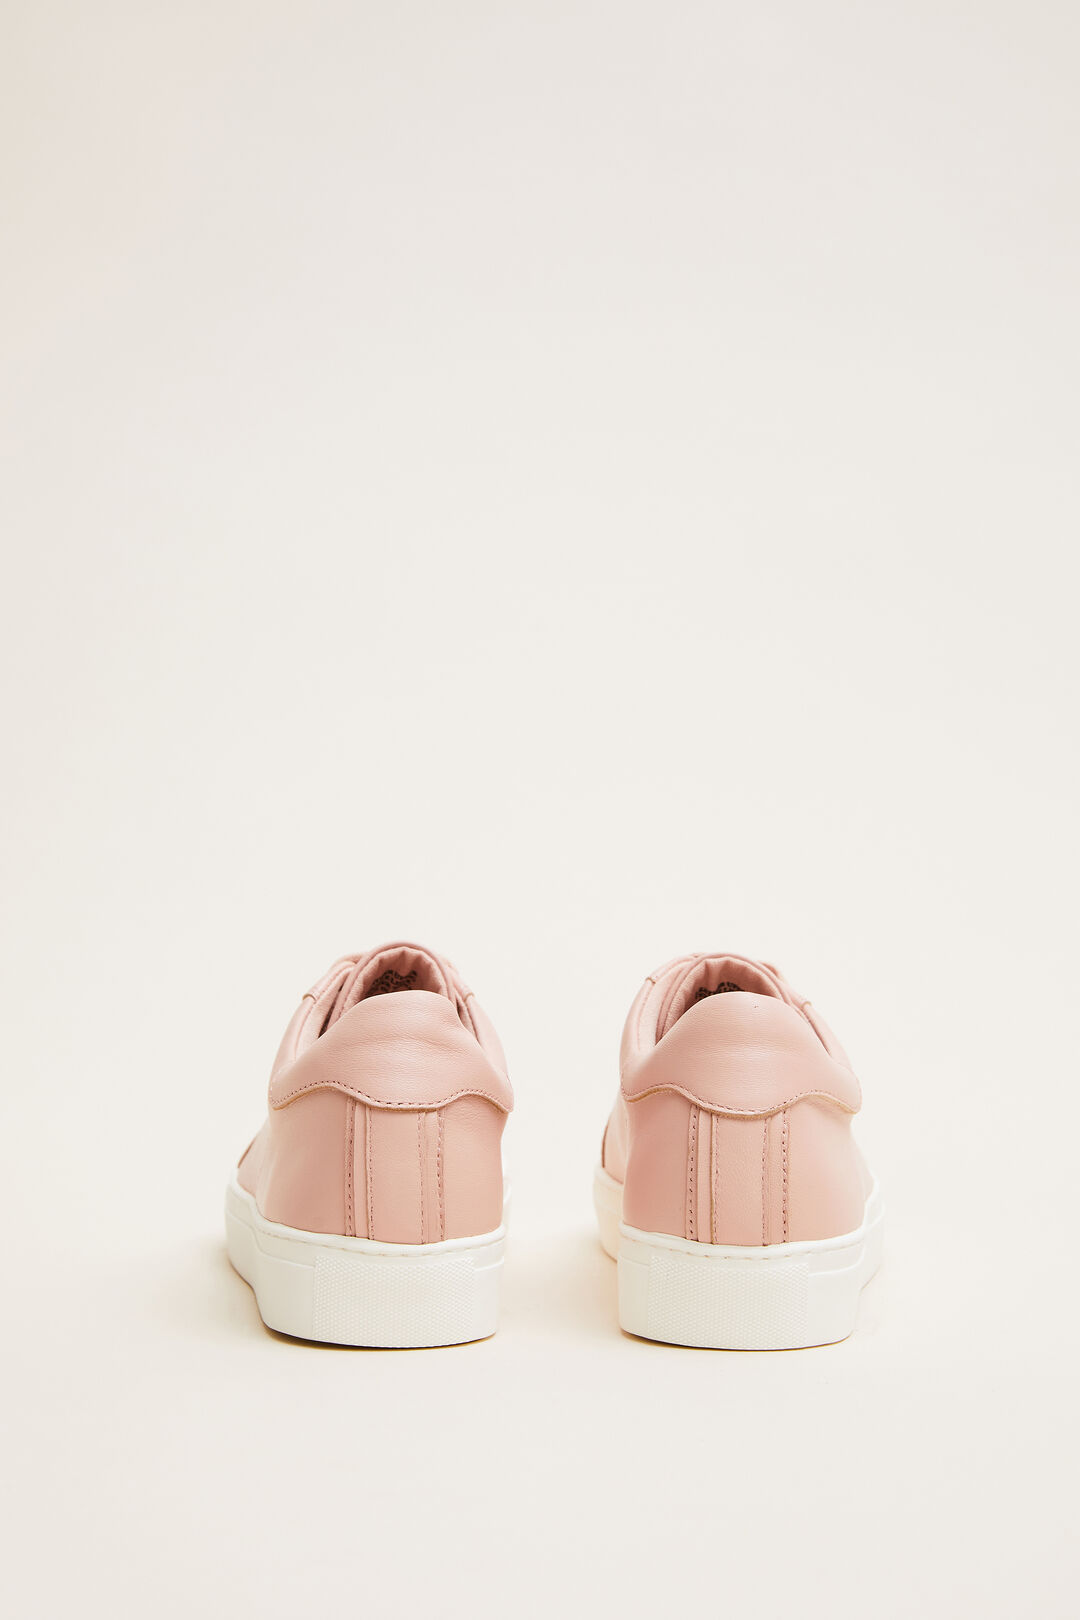 CLASSIC LEATHER SNEAKER  DUSTY PINK  hi-res